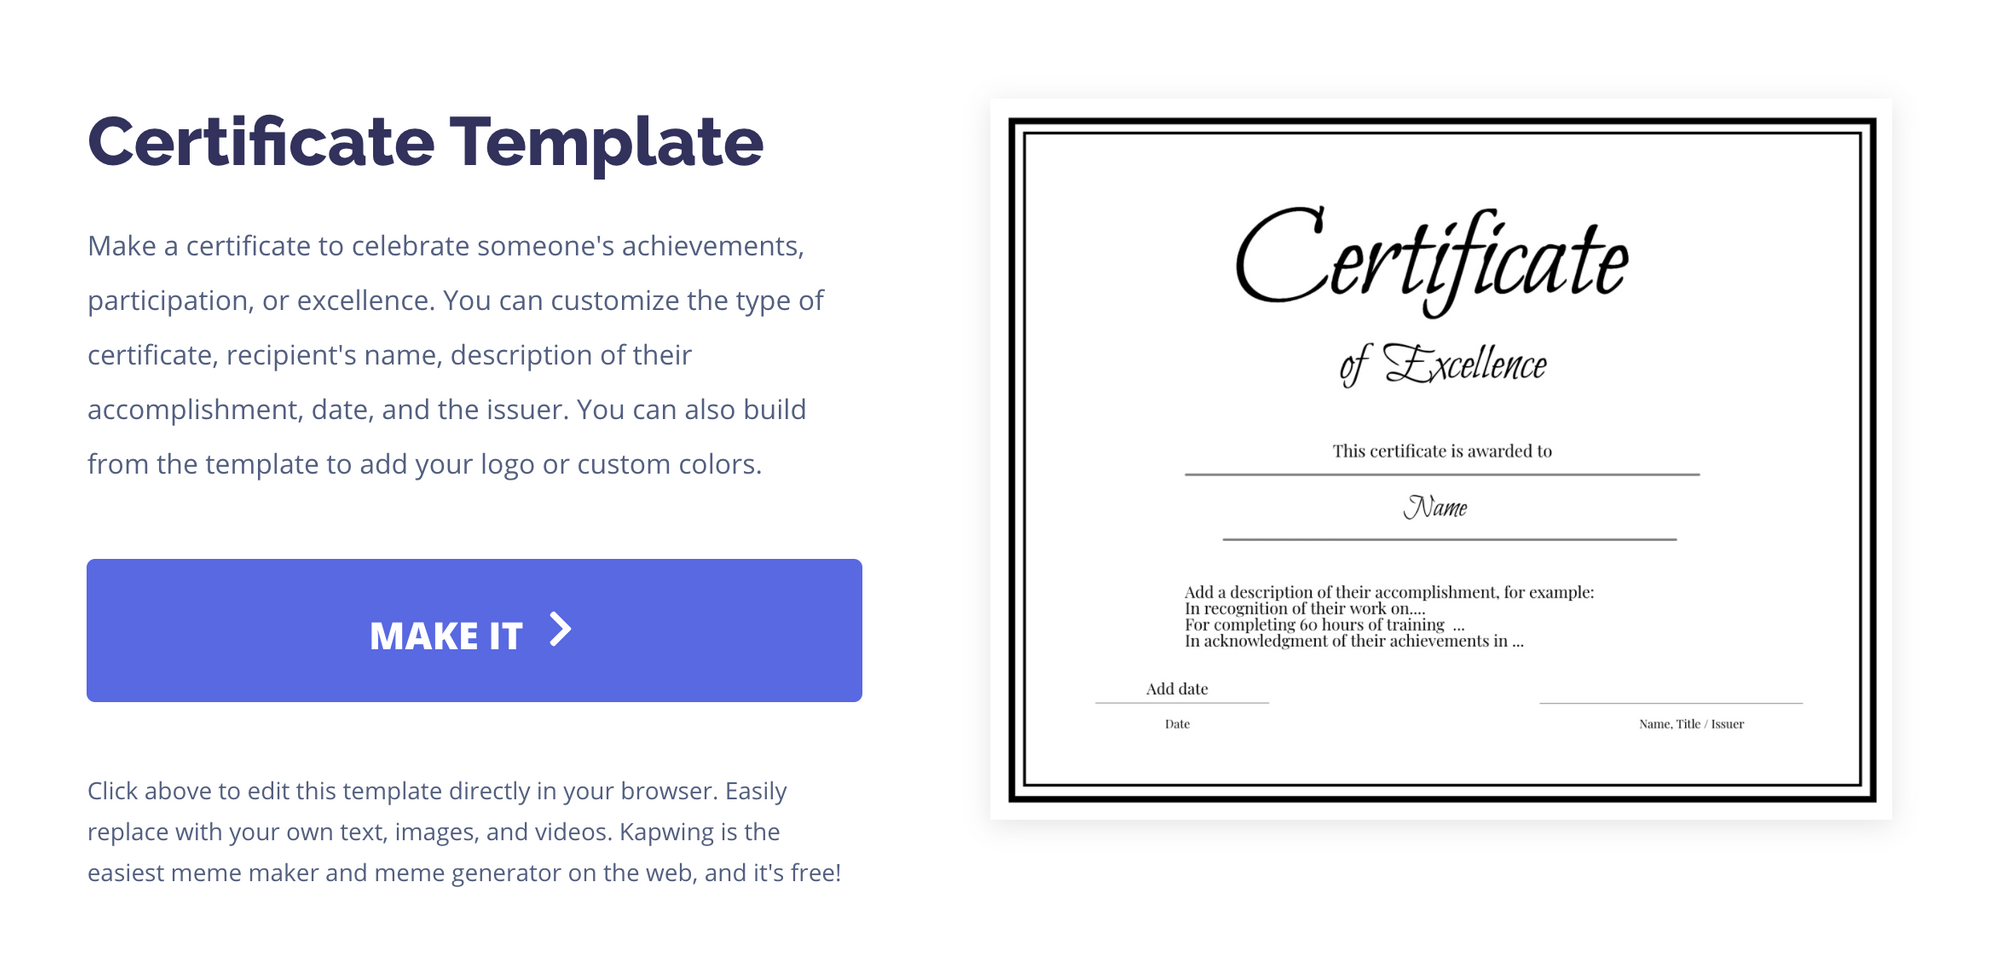 Certificate template landing page